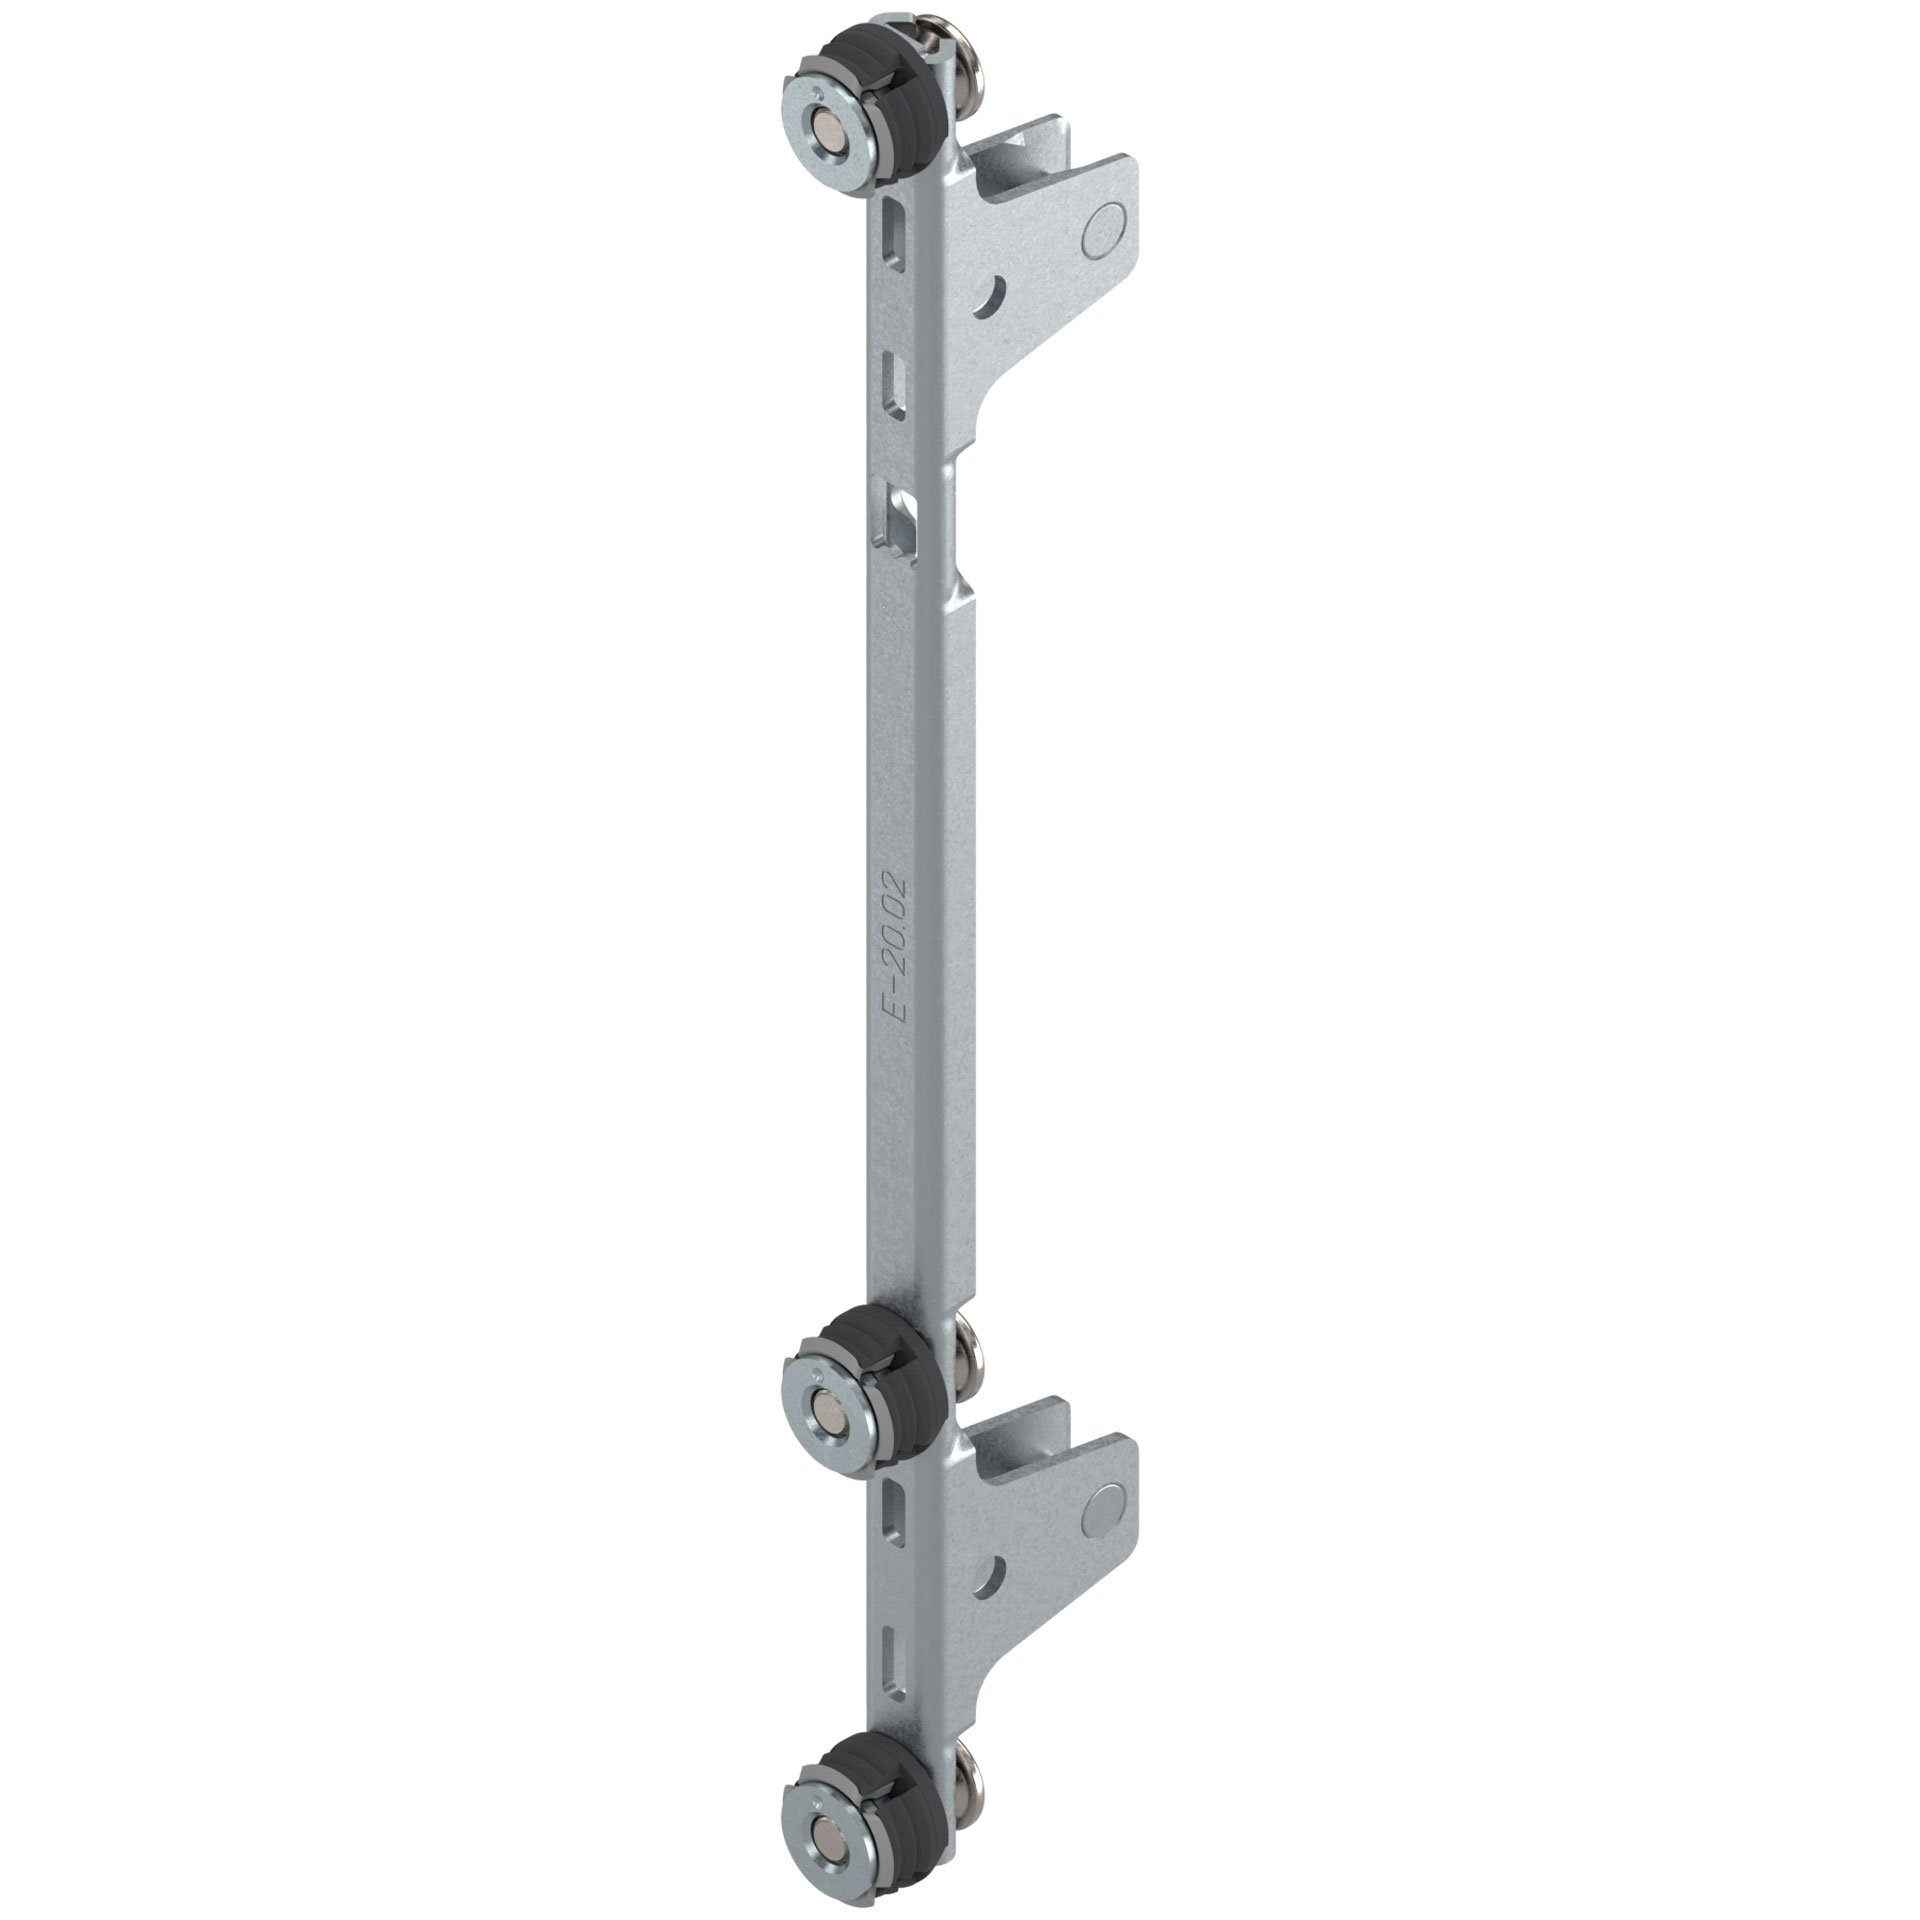 Image of Blum Legrabox front fixing bracket, height C (191mm)